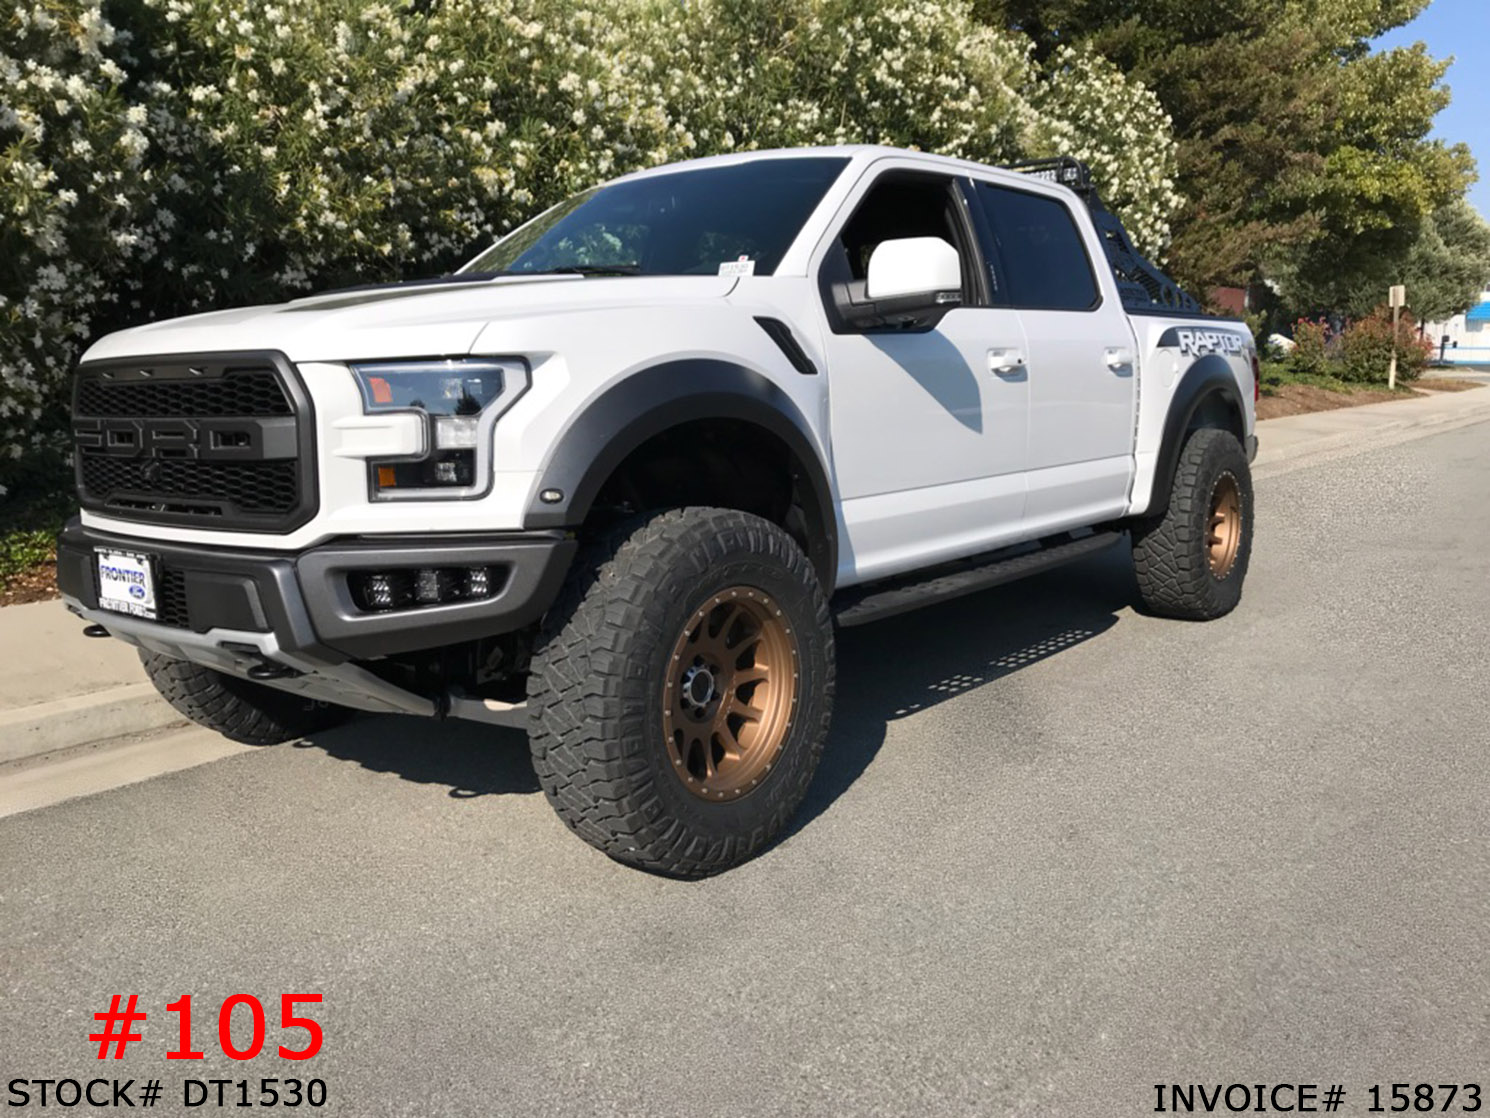 2018 Ford Raptor Dt1530 Truck And Suv Parts Warehouse